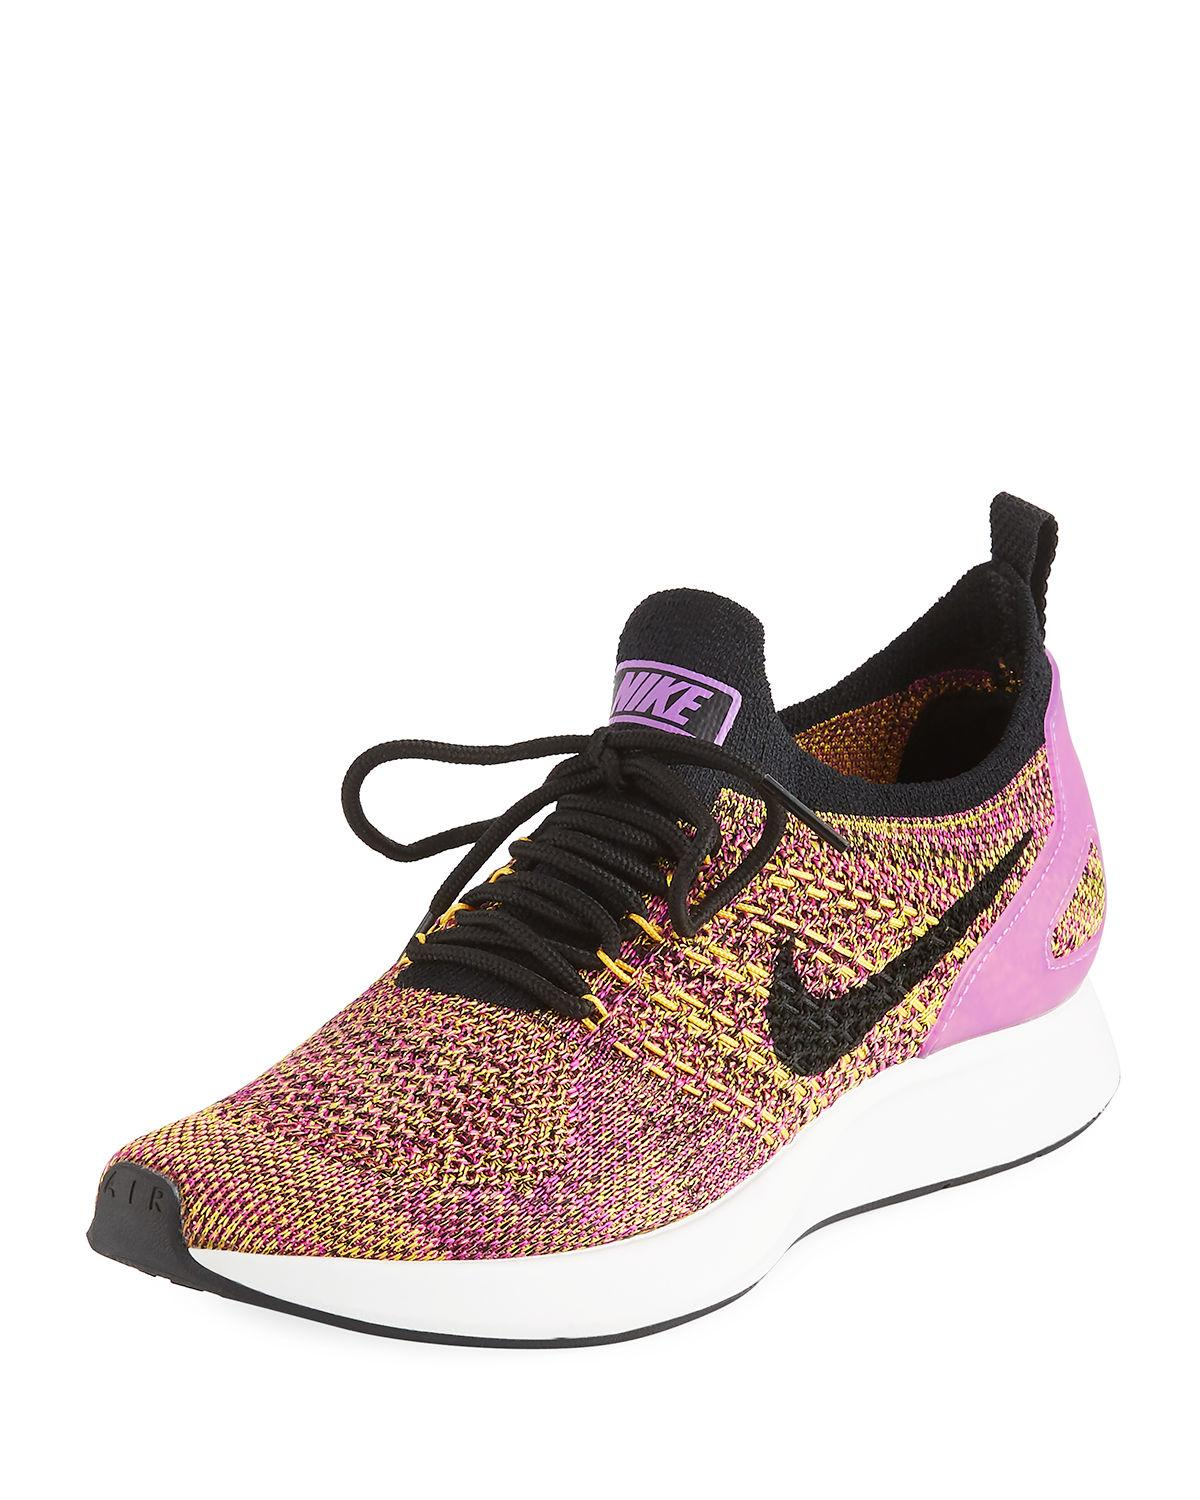 a9f6a7b0834 Nike Women S Air Zoom Mariah Flyknit Racer Casual Shoes